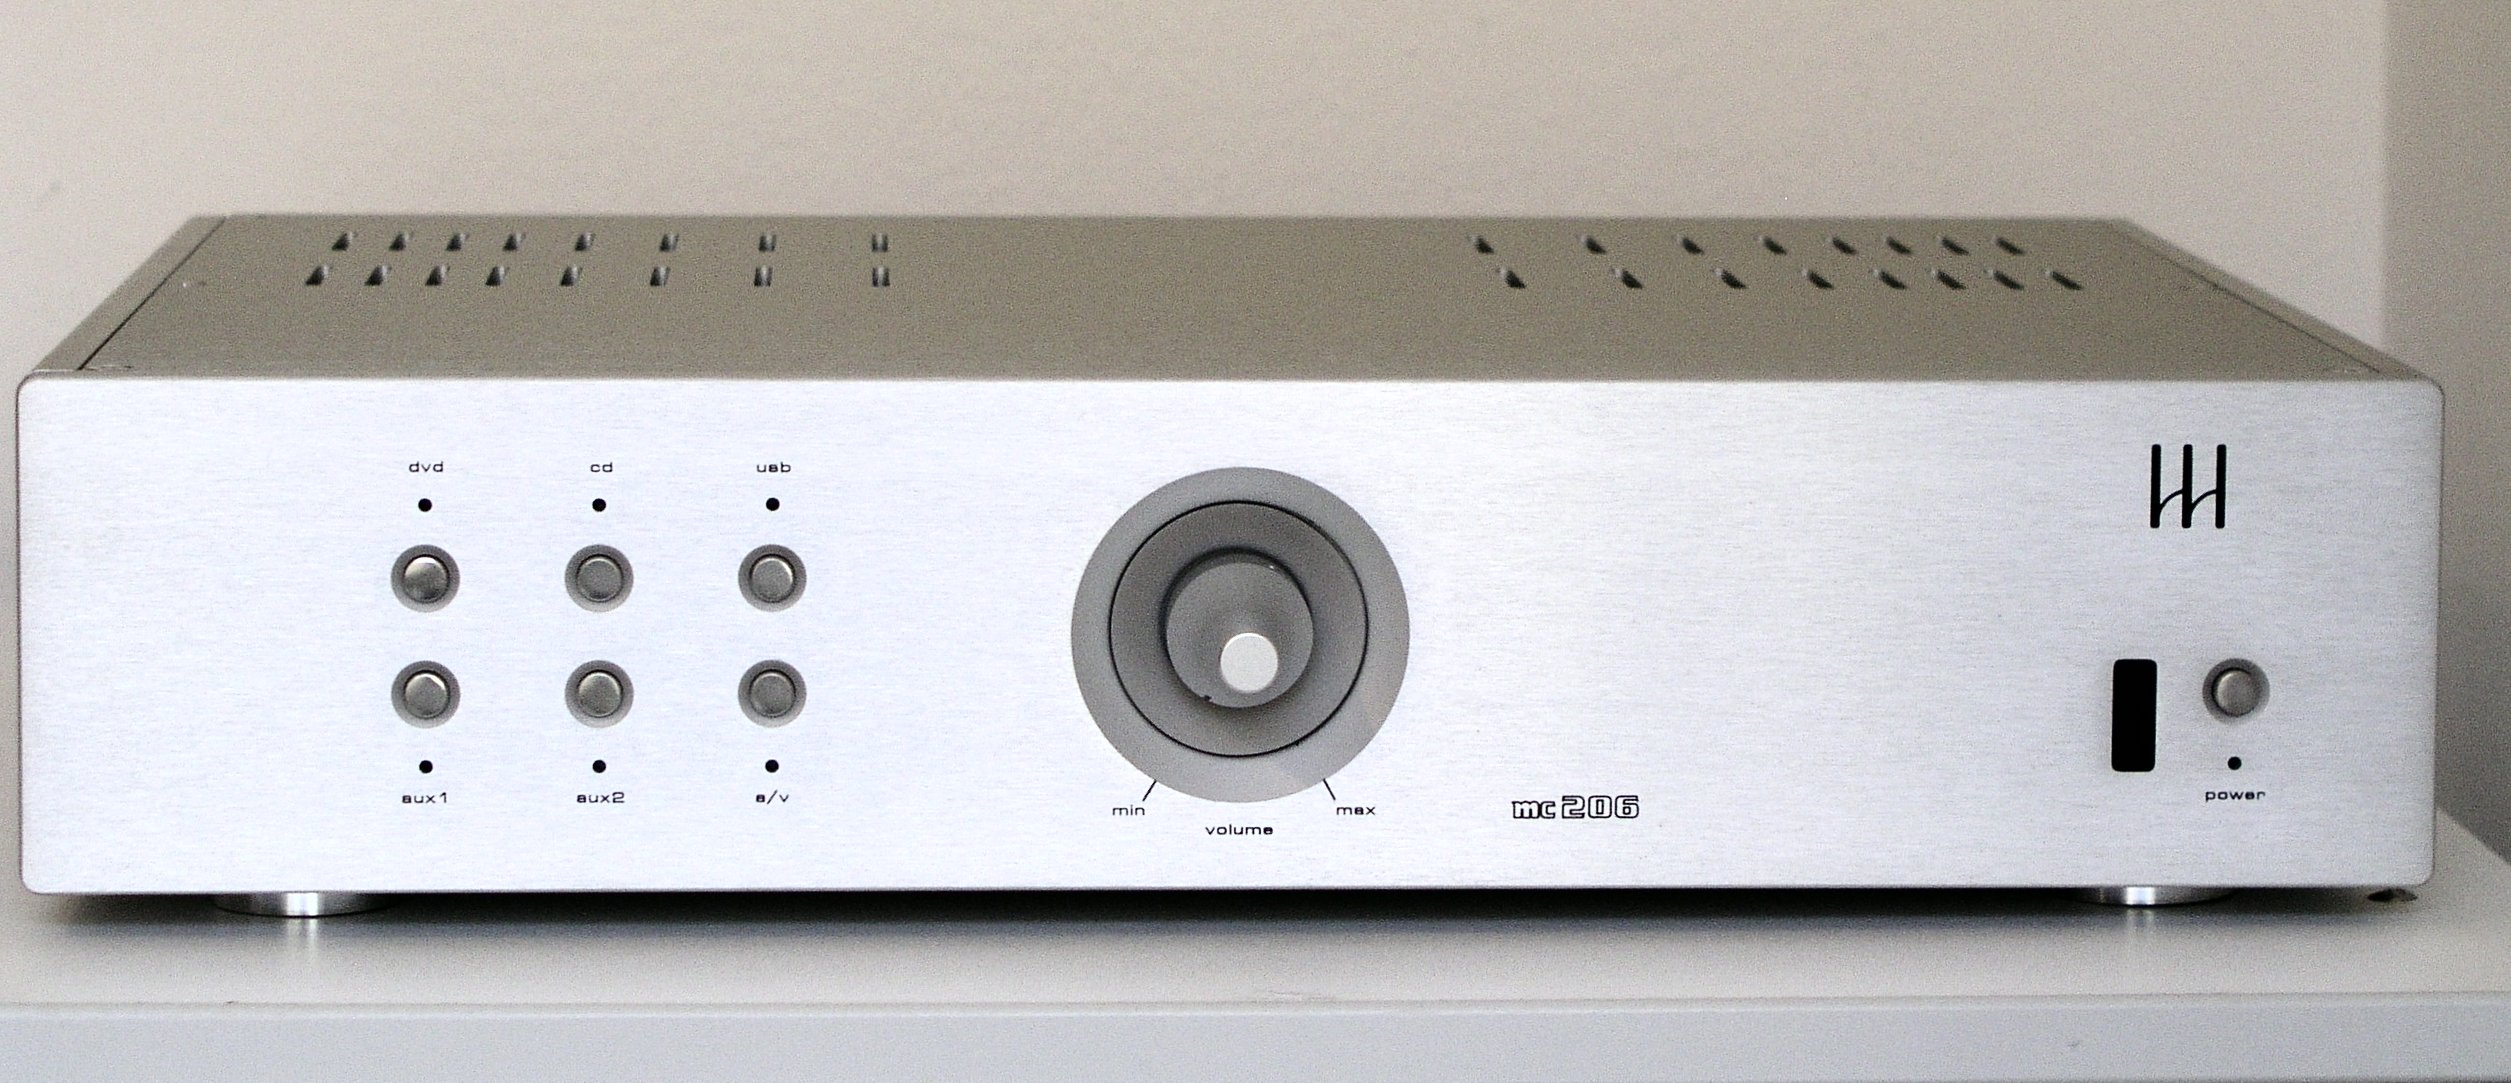 Monrio MC 206, integrated amplifier